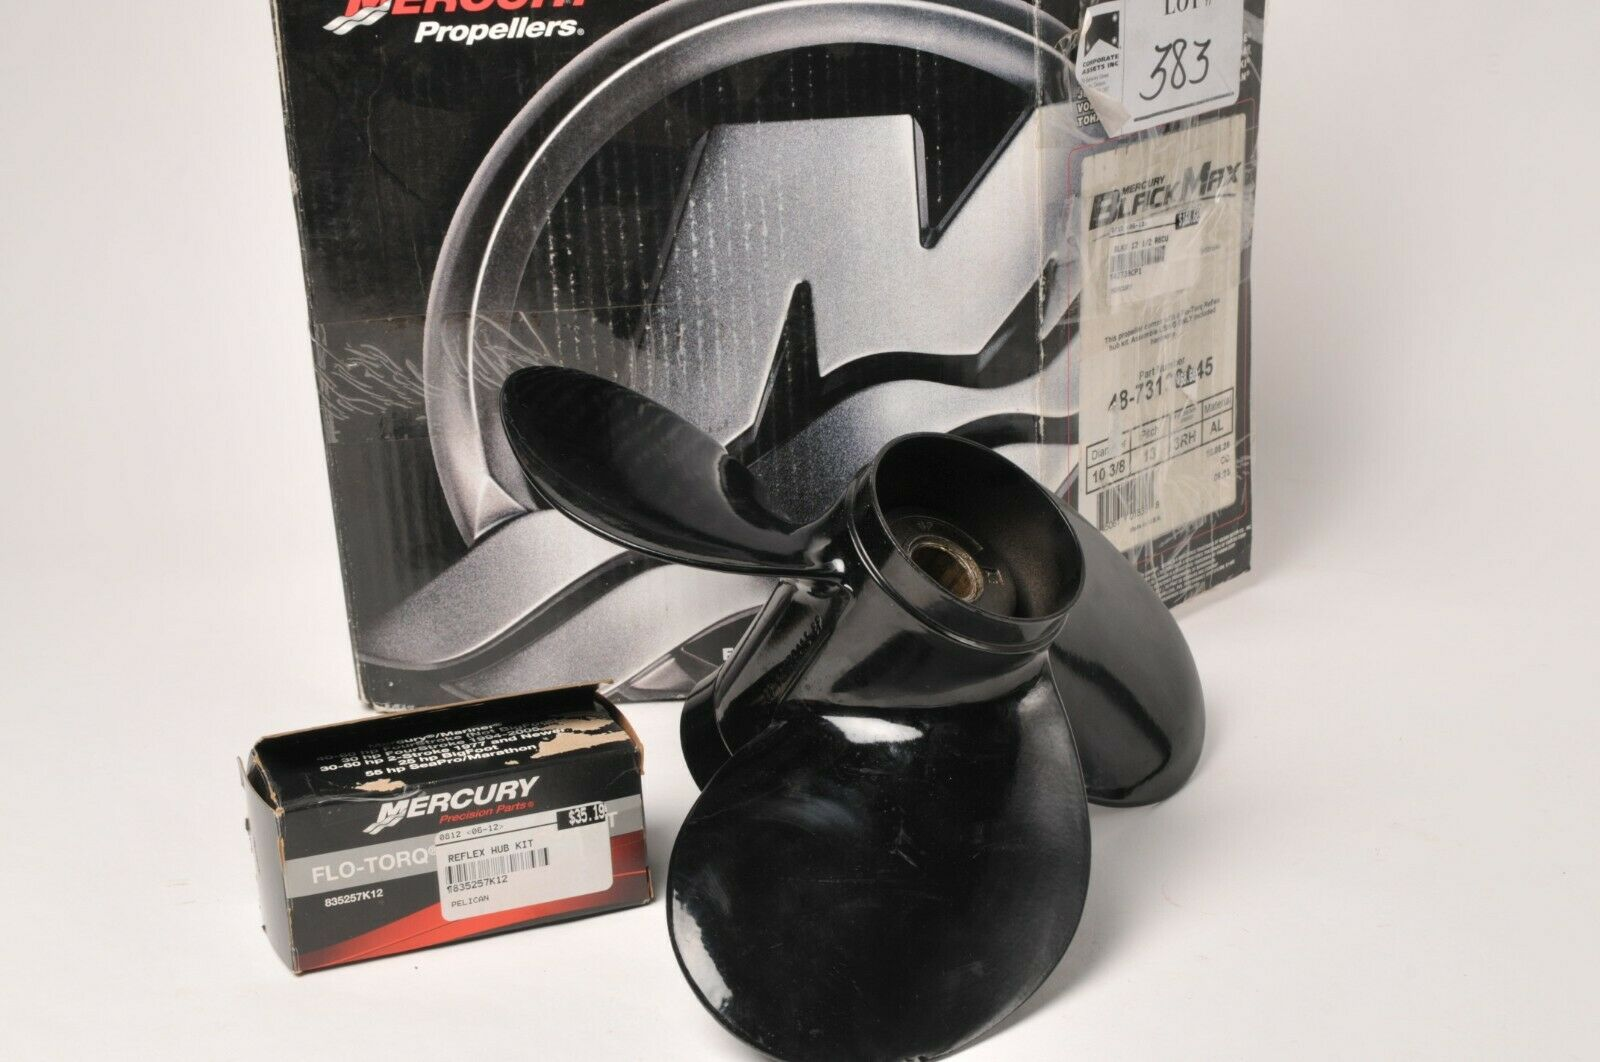 OEM Mercury Quicksilver Flo-Torq III Hub Kit For 40-60 HP 4 Stroke CT Bigfoot